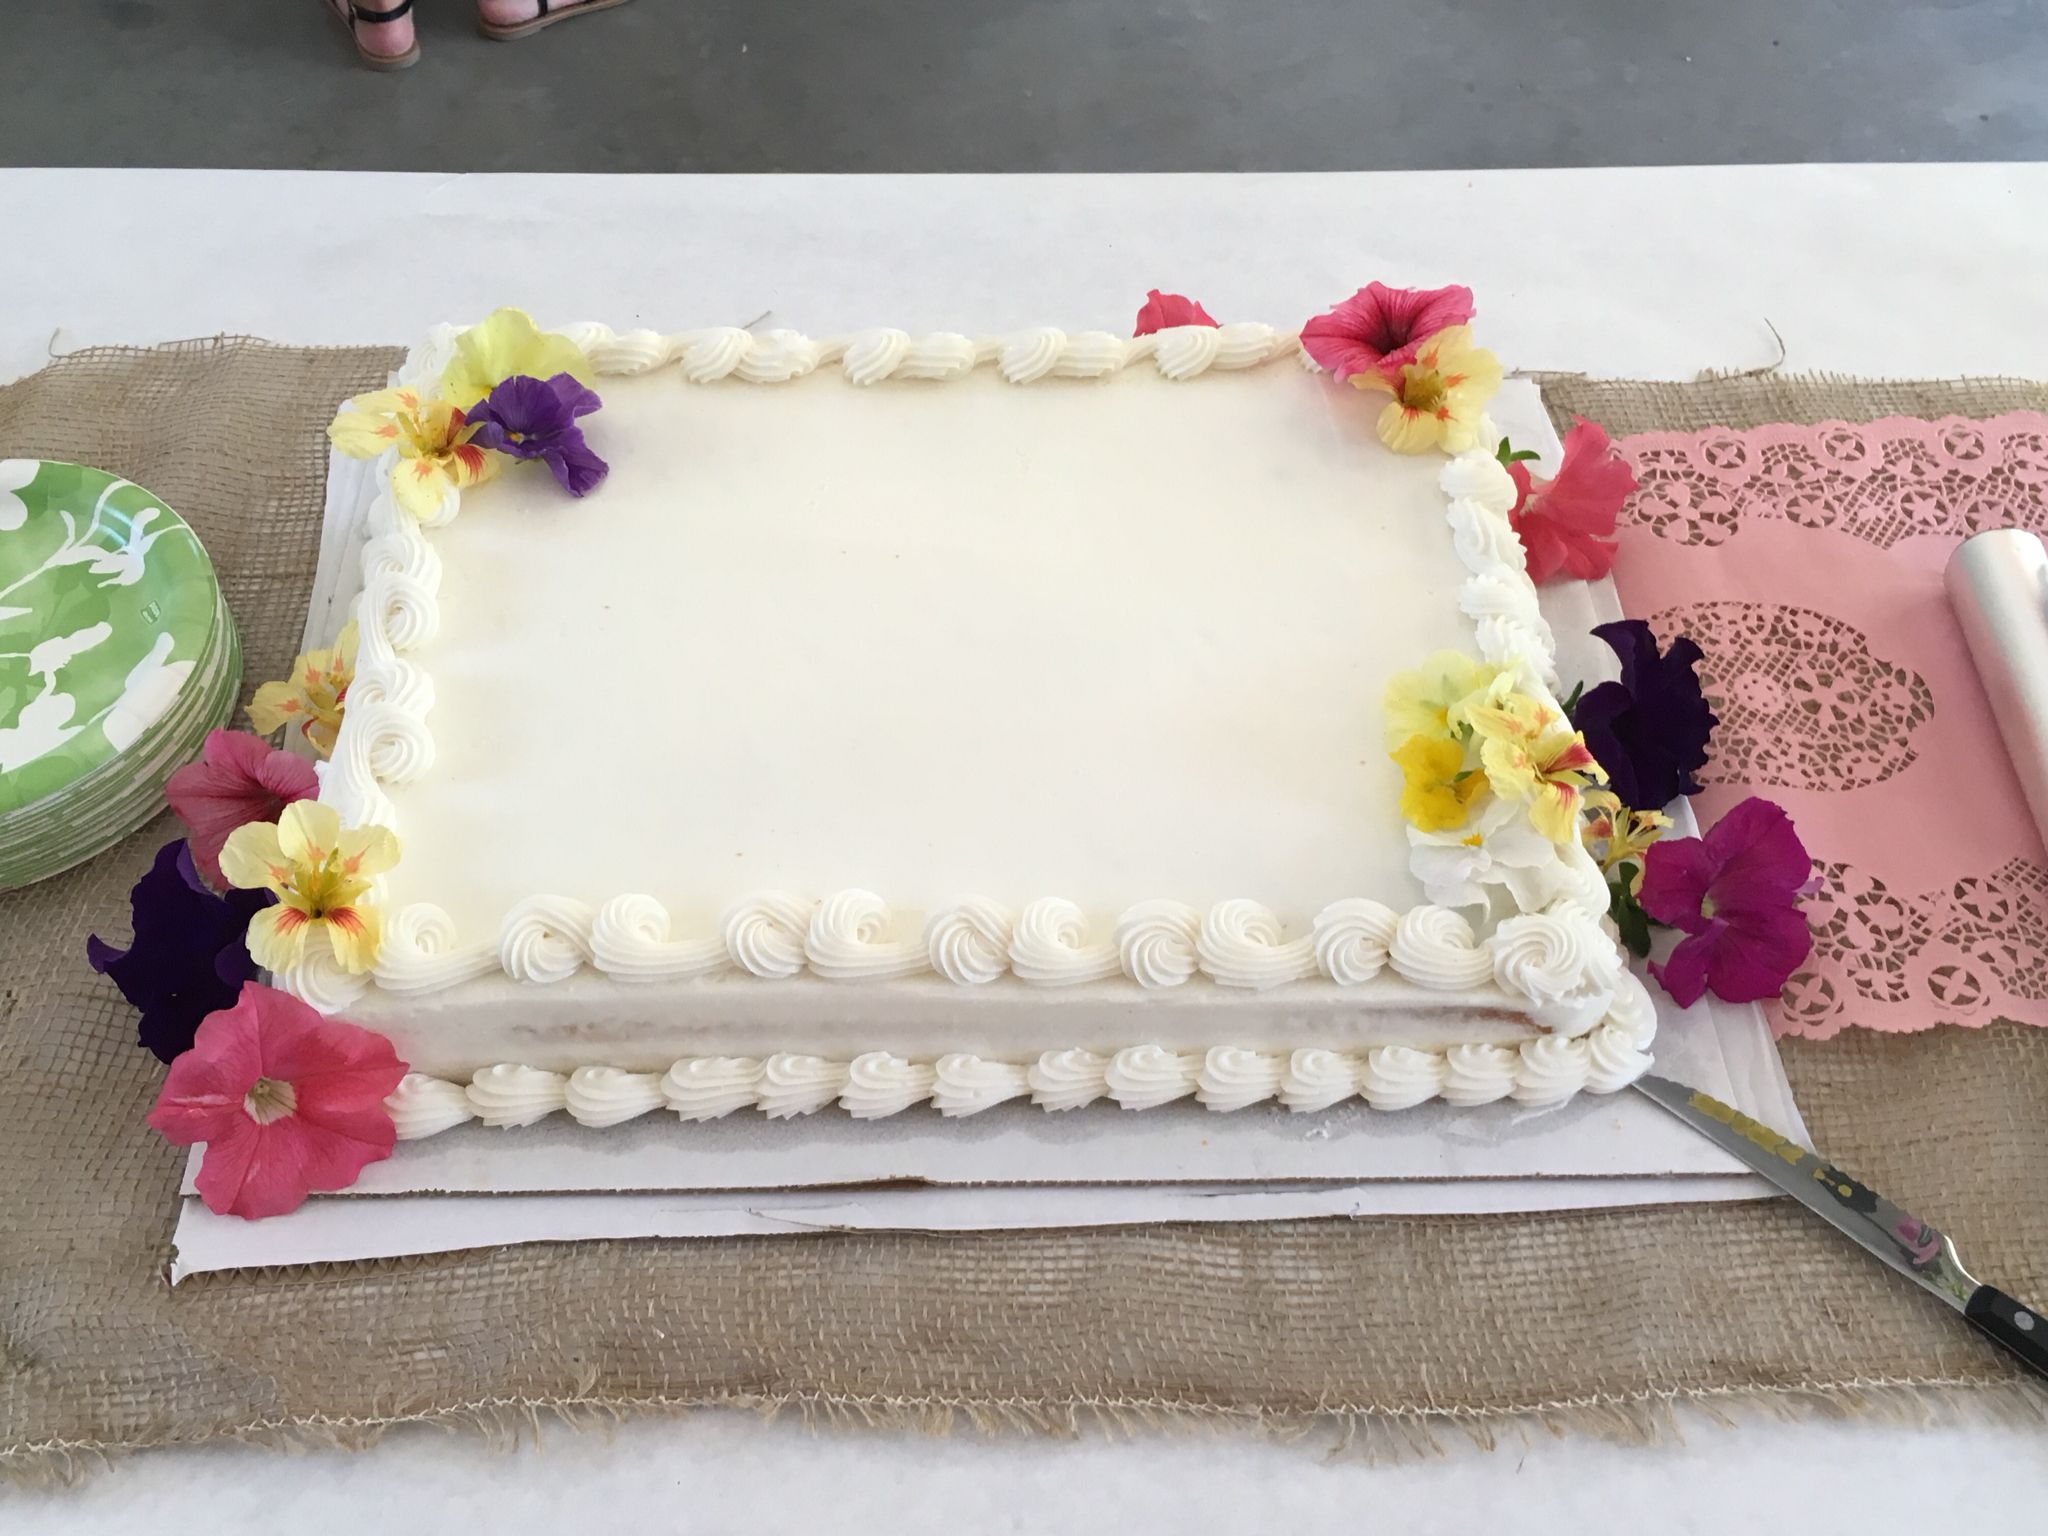 Costco white sheet cake with fresh flowers for graduation garden party